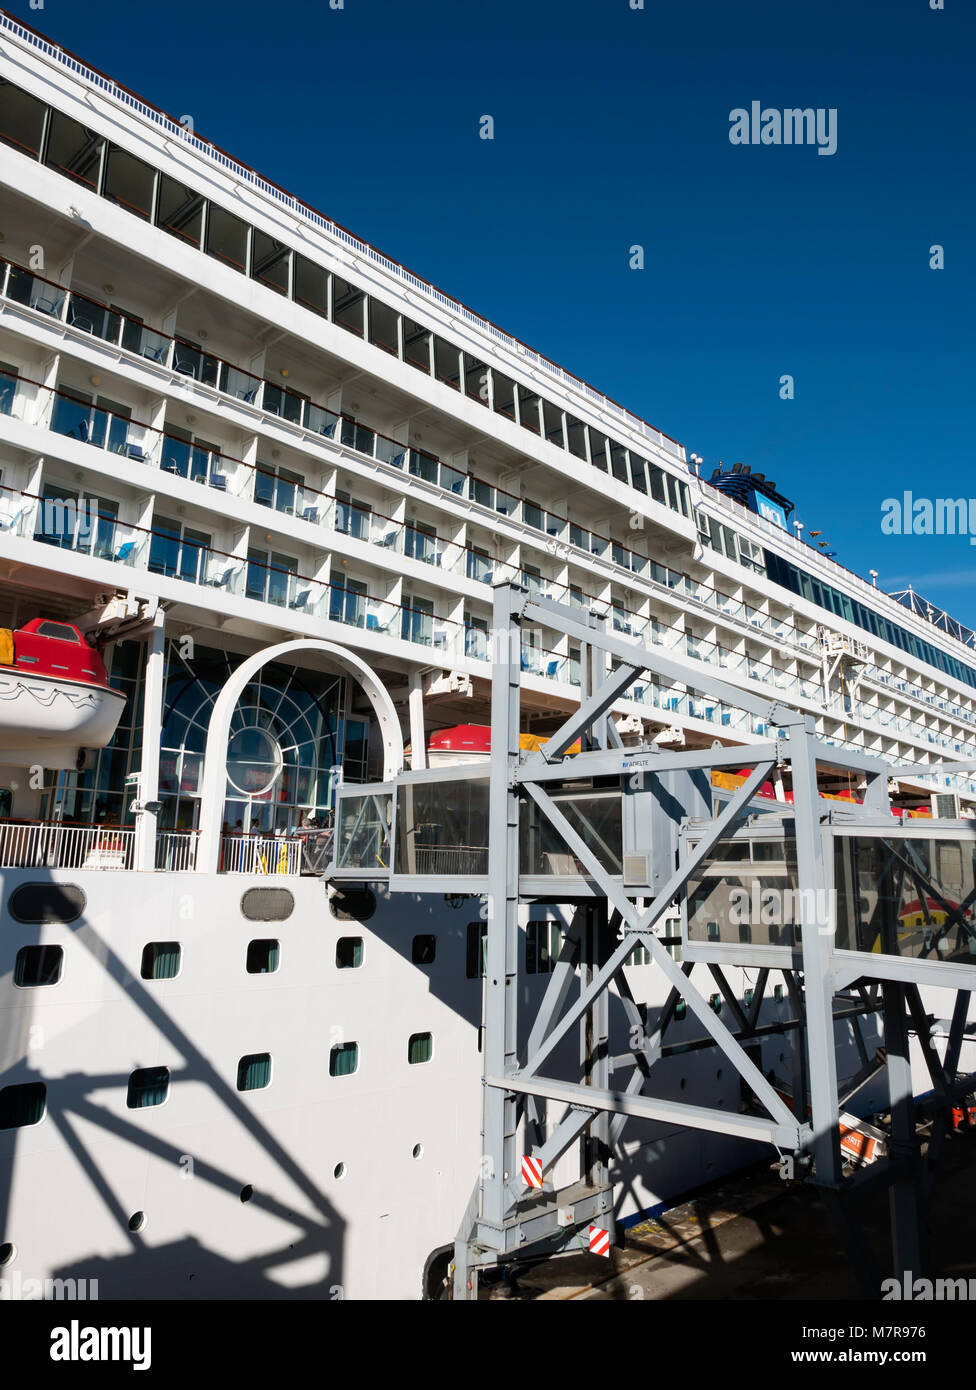 Gang plank for embarkation / disembarkation on the Norwegian Spirit Cruise Ship - Stock Image